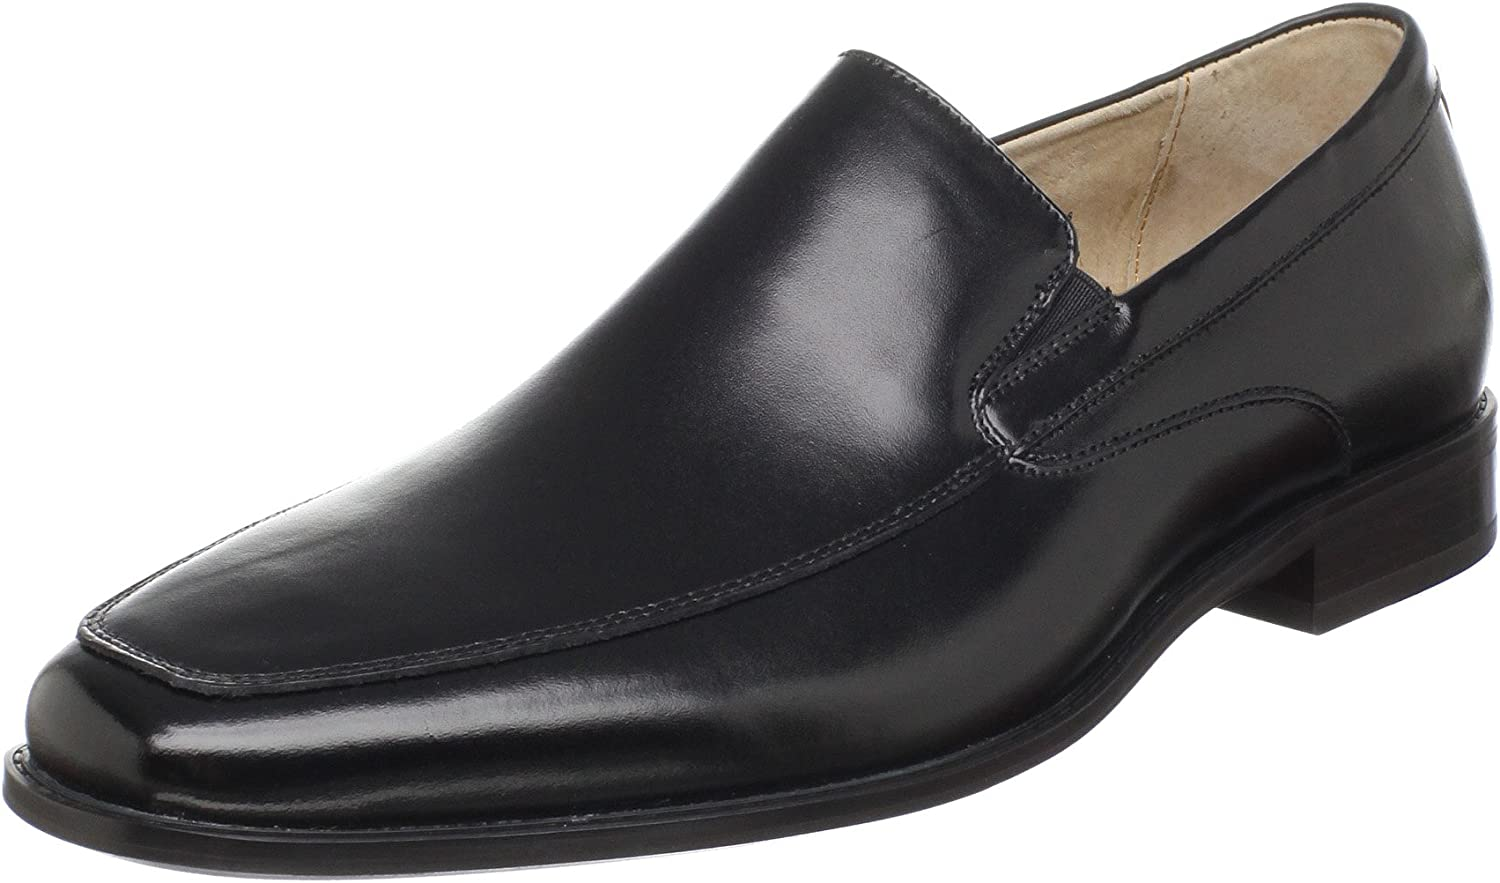 Safety Direct sale of manufacturer and trust Stacy Adams Men's Slip-On Jonah